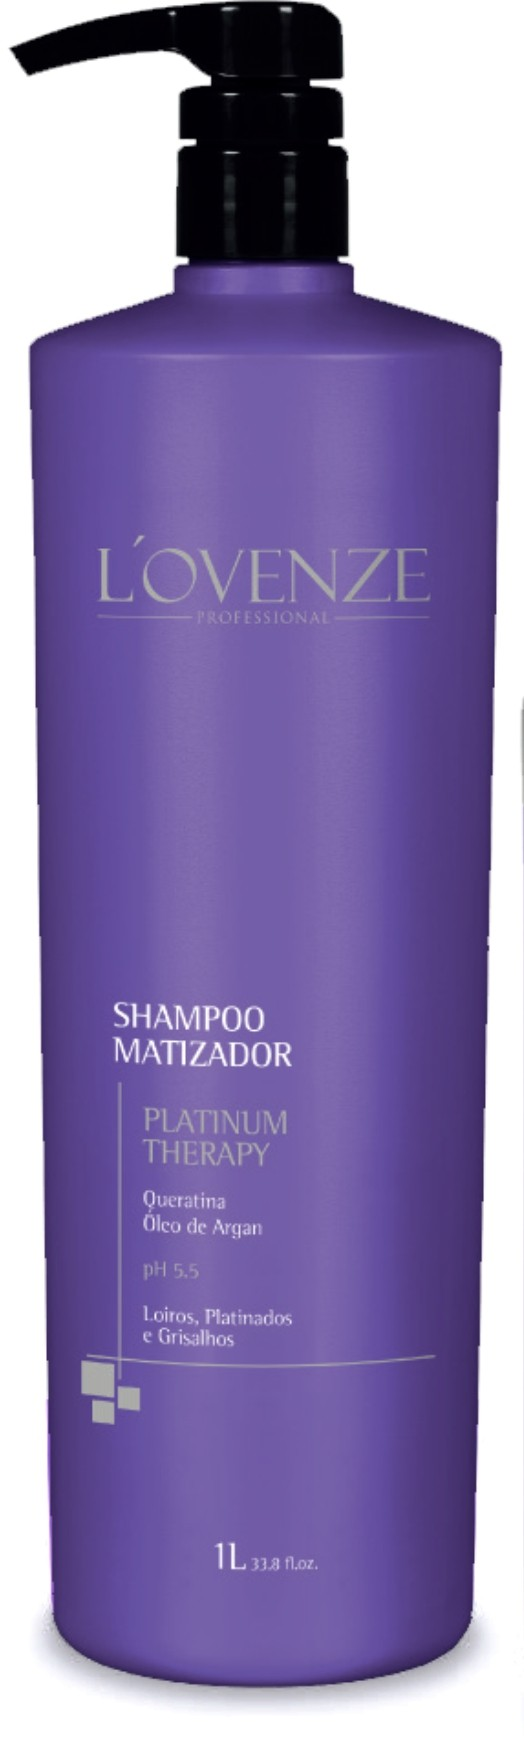 Platinum Therapy - Shampoo